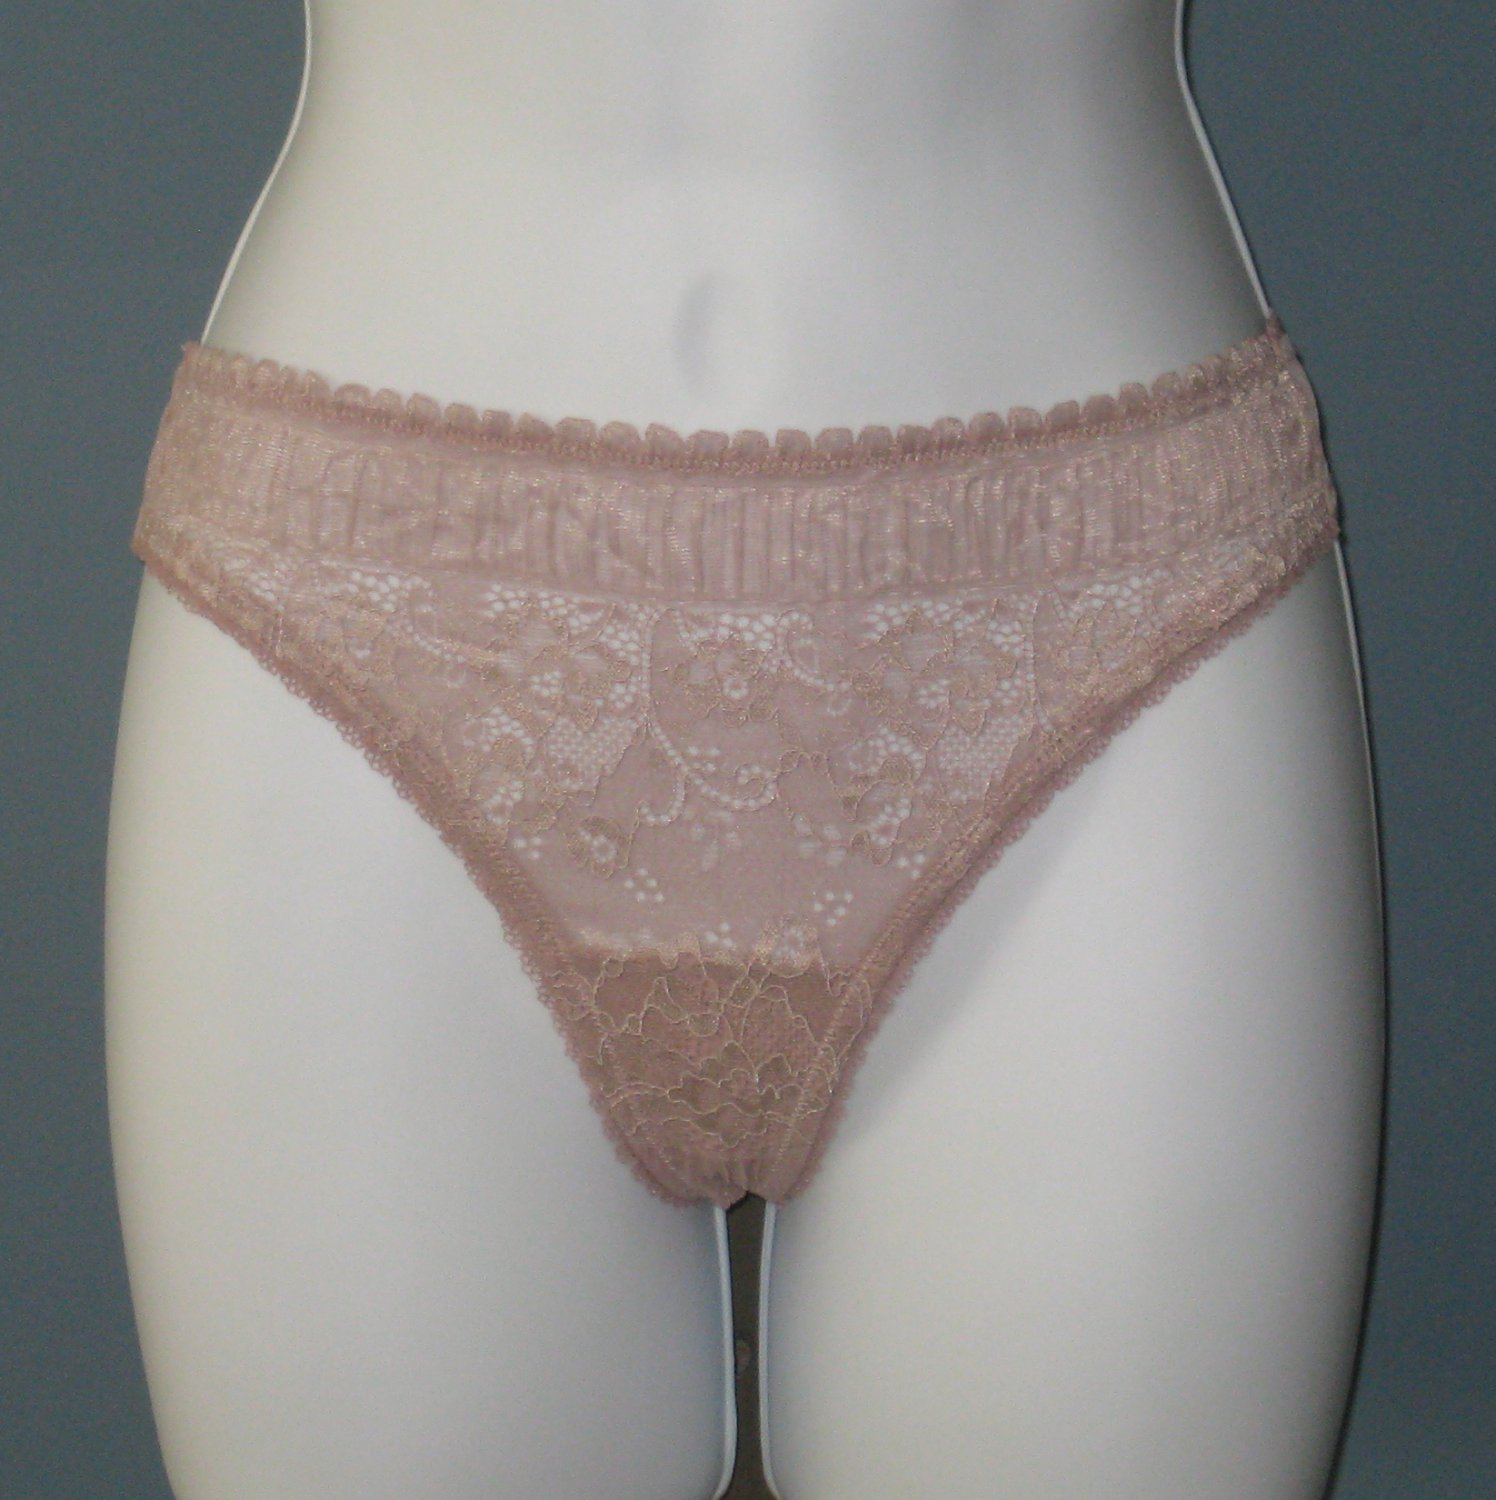 NWT La Perla Studio Grayish Pink Looking For Lace Thong #0015266 - S